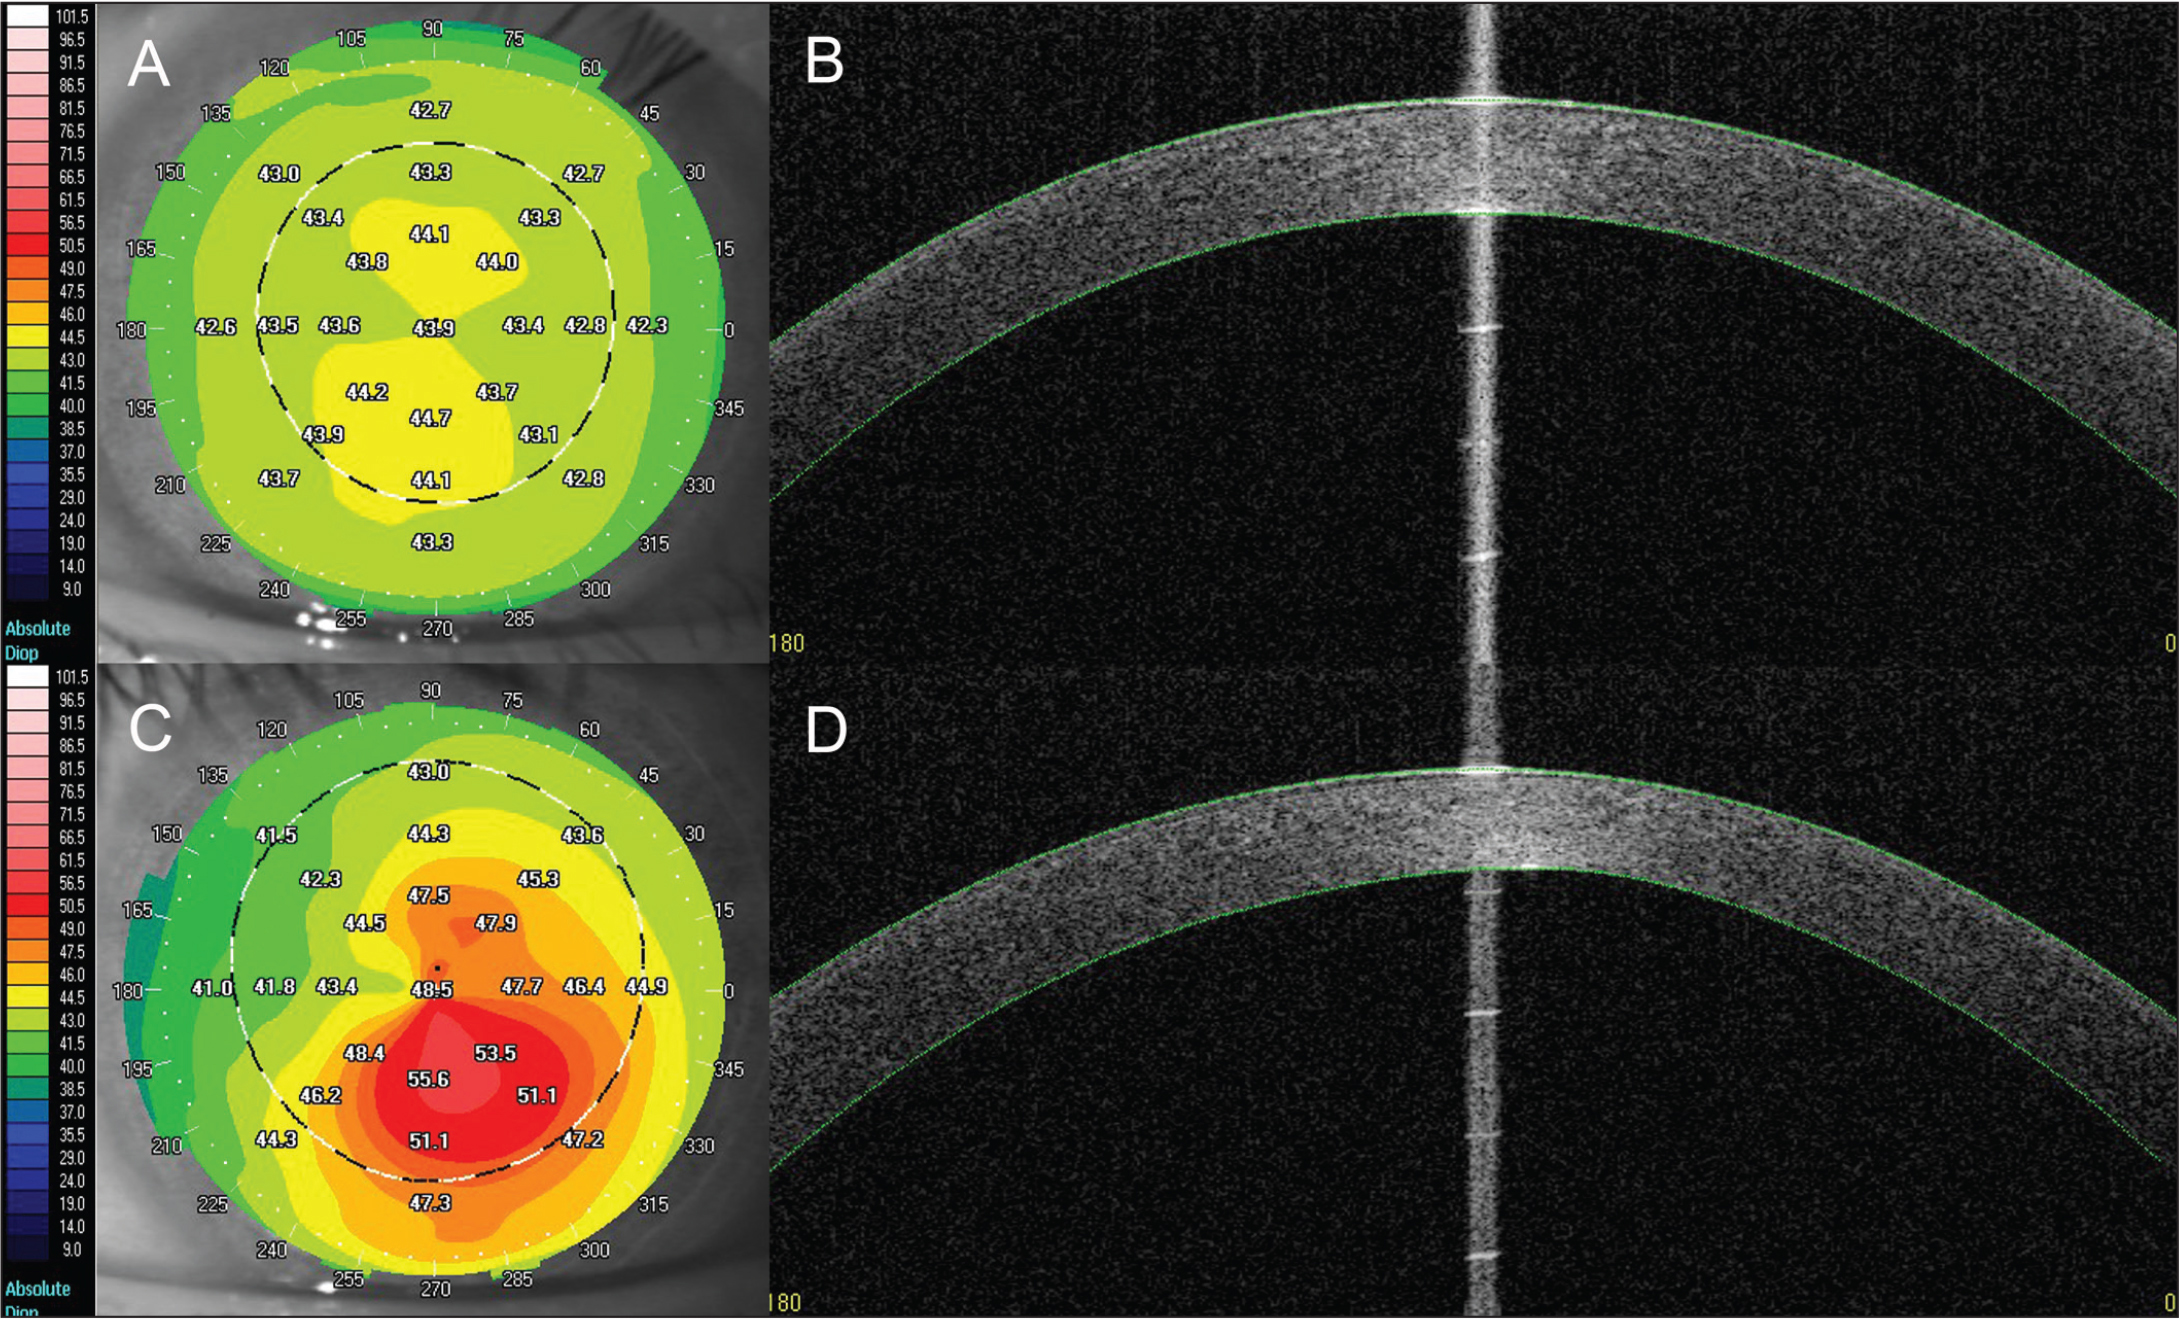 Swept-source optical coherence tomography analysis of corneas of keratoconic and normal patients. (A) Keratometric axial power topography of normal cornea. (B) Cross-section view of normal cornea. (C) Keratometric axial power topography of keratoconic cornea. (D) Cross-section view of keratoconic cornea.